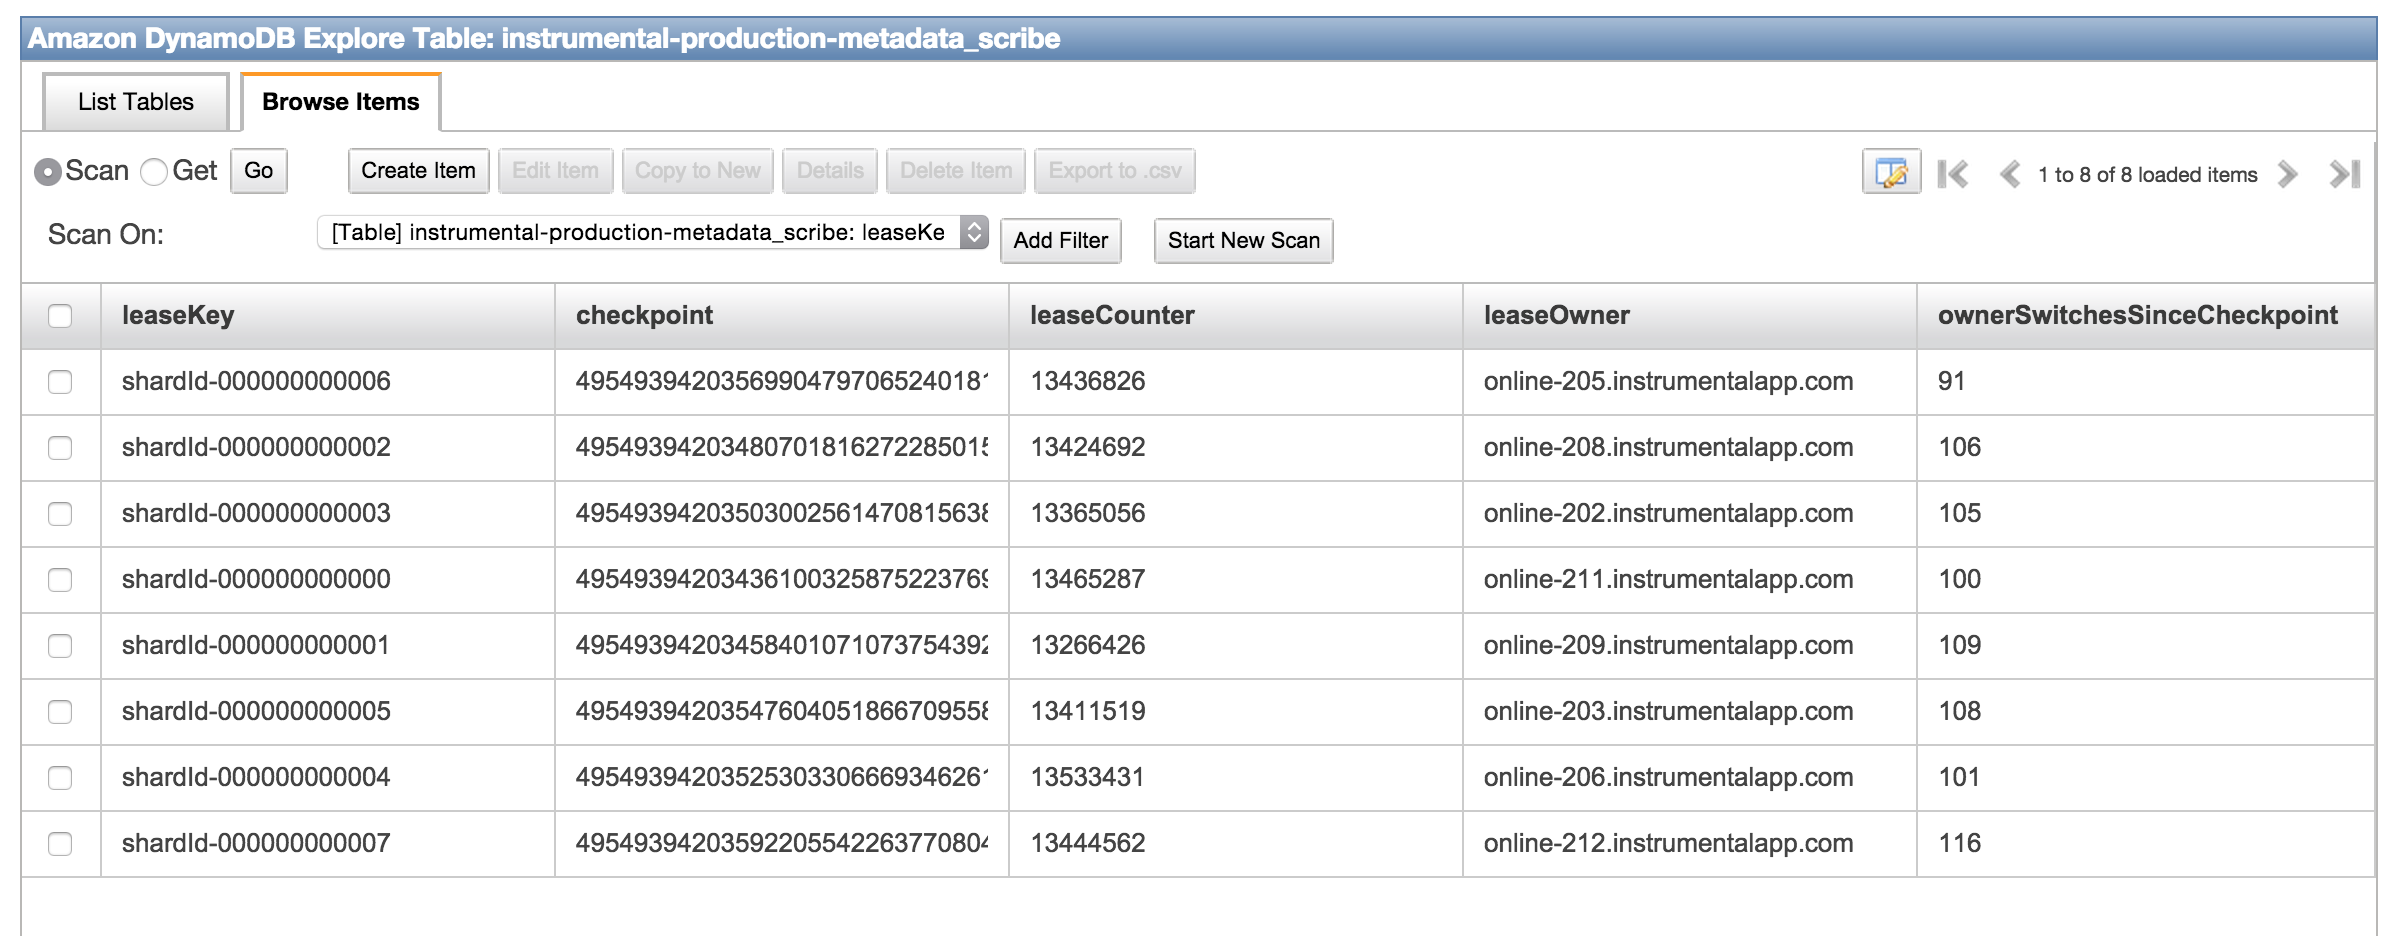 Kinesis Metadata DynamoDB table